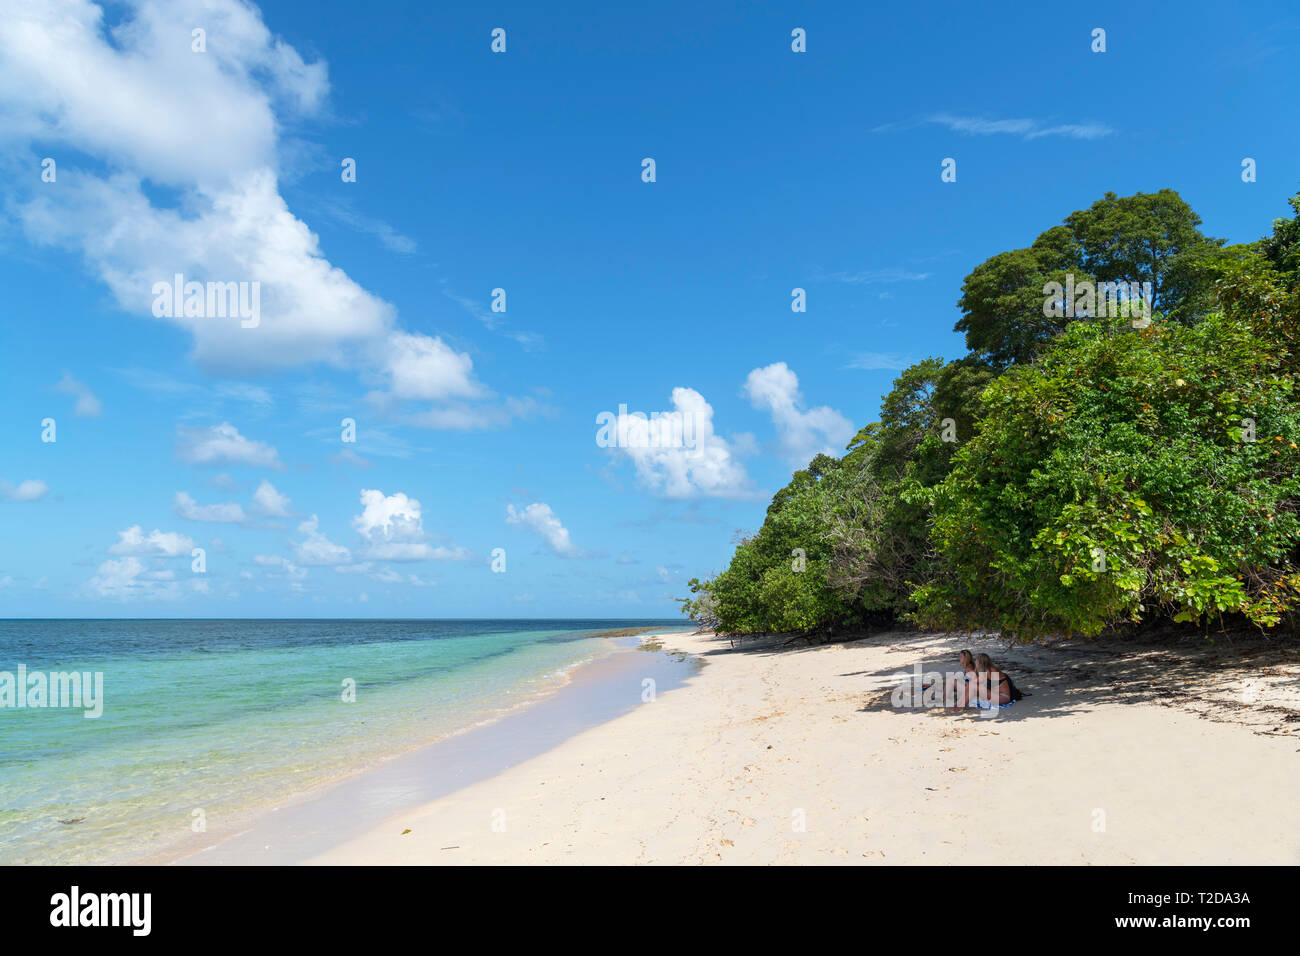 Great Barrier Reef, Australia. Couple sitting on the beach on Green Island, a coral cay in the Great Barrier Reef Marine Park, Queensland, Australia Stock Photo